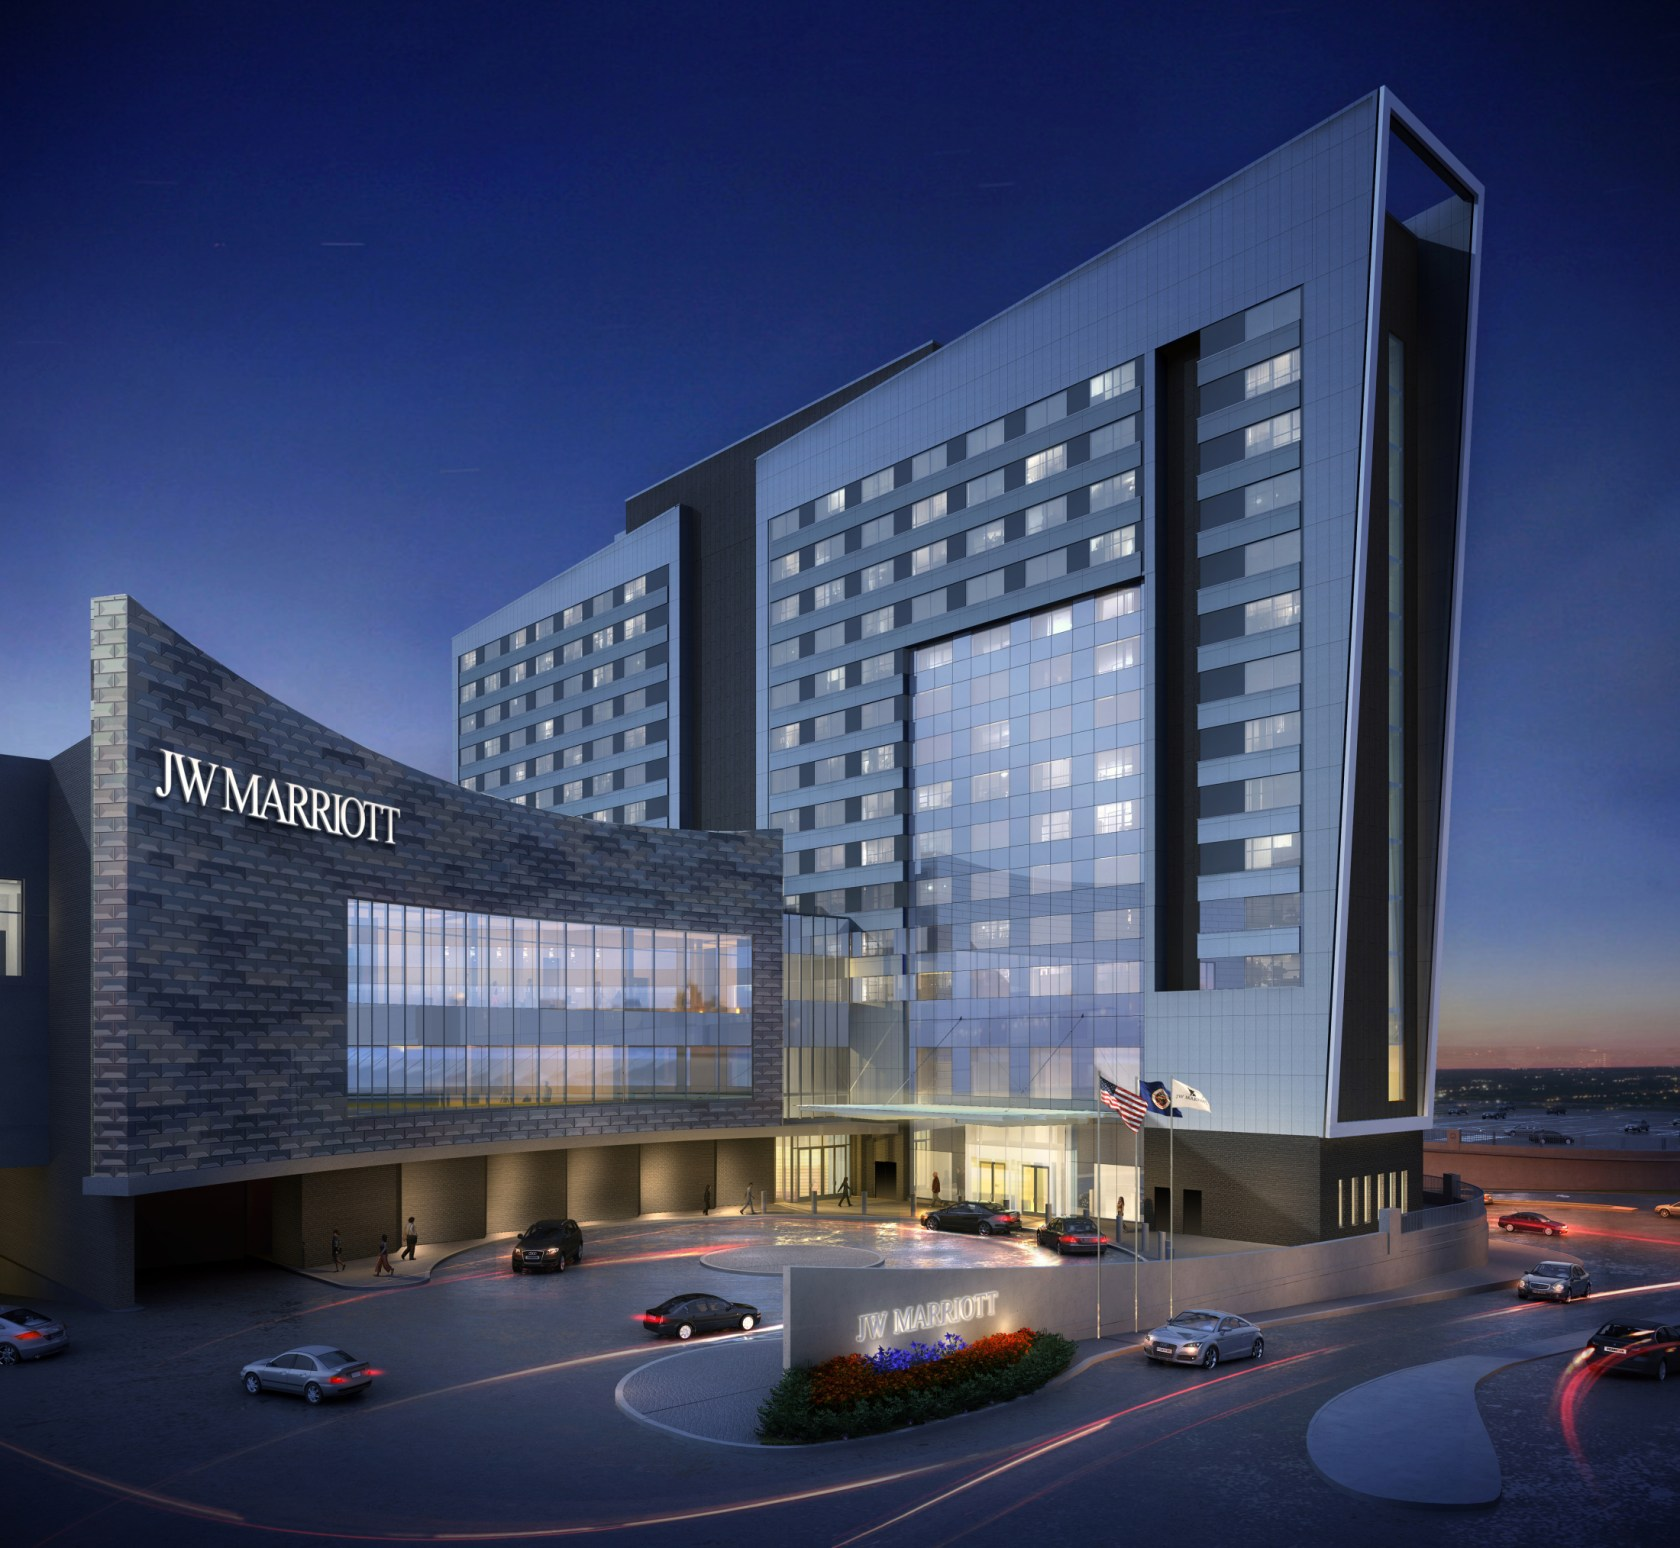 Mall Of America Expansion And Jw Marriott Hotel - Architizer